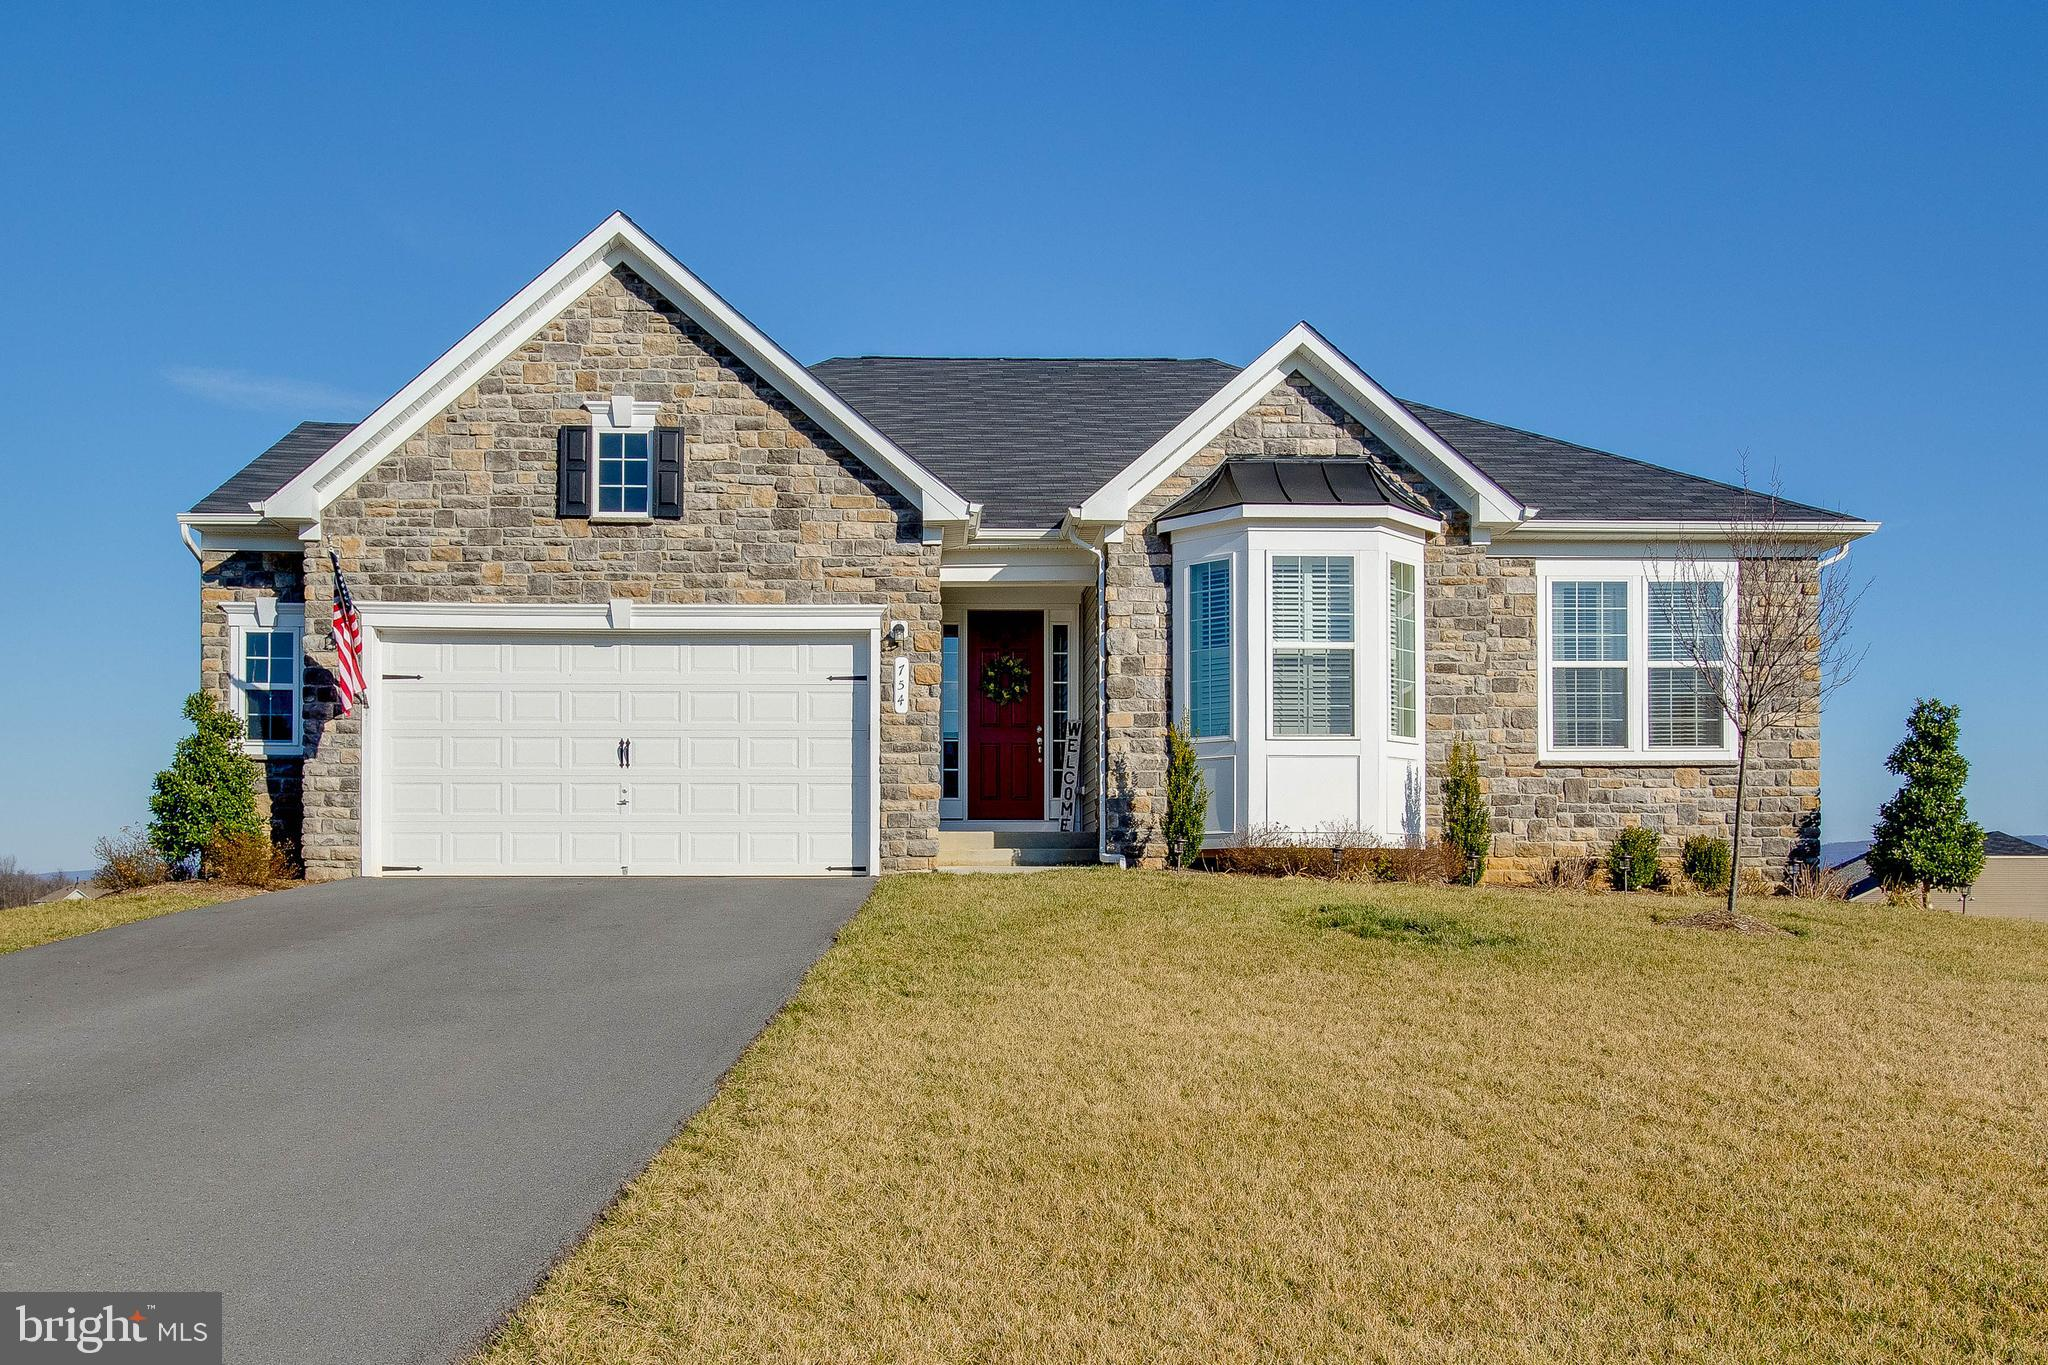 This beautiful home offers casual sophisticated living in Berryville with one level living and over